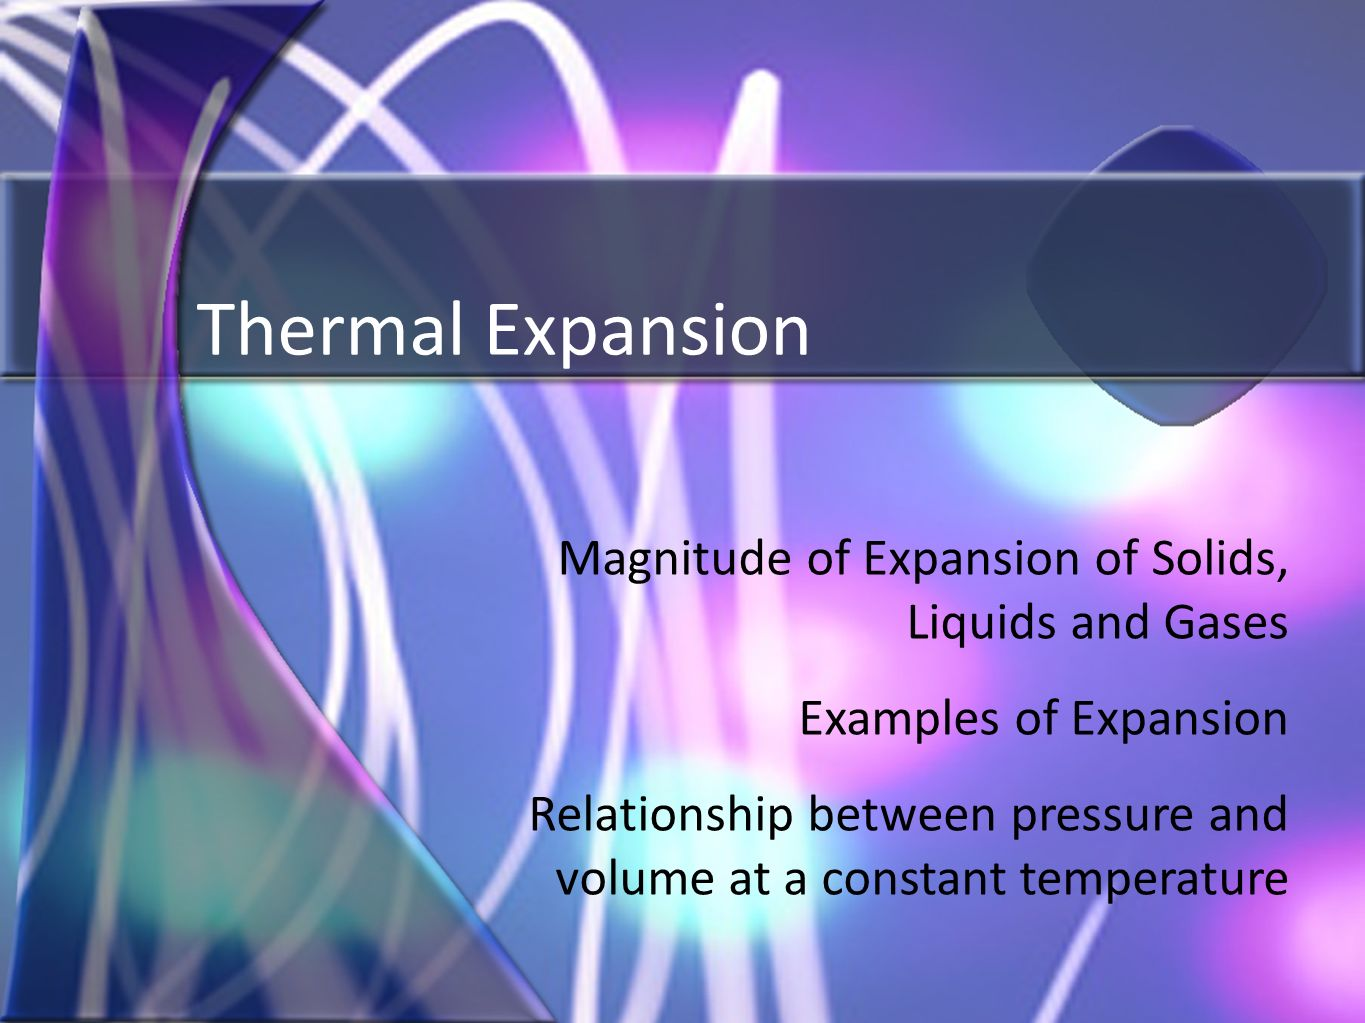 volume pressure and temperature relationship examples